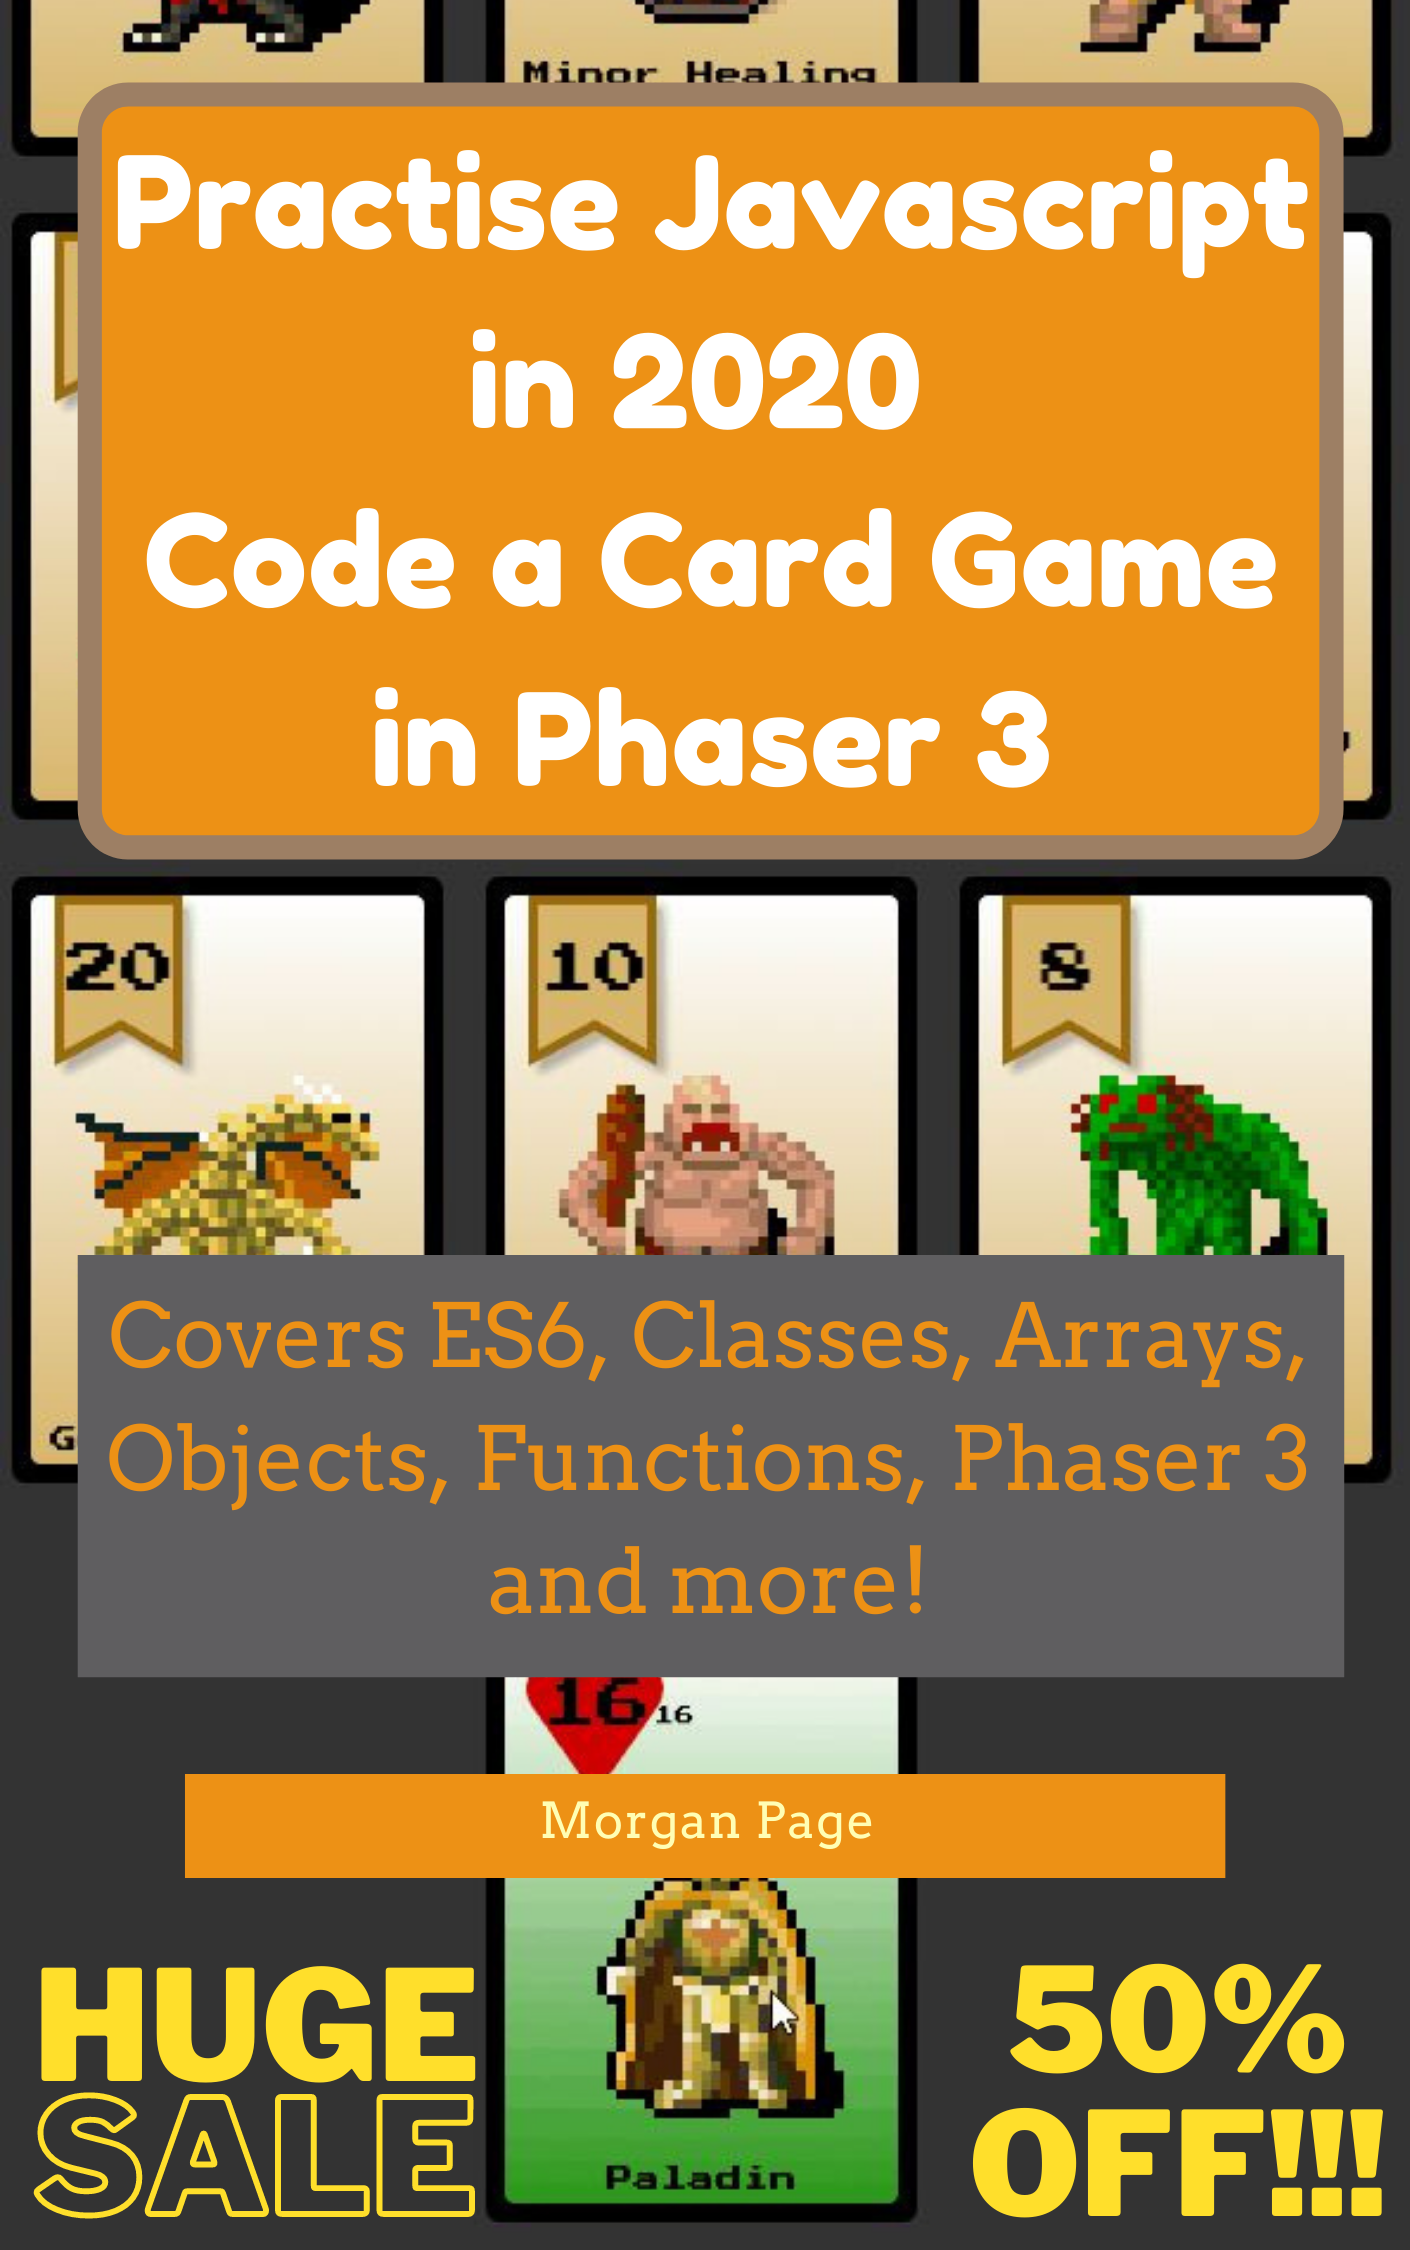 Practise Modern Javascript By Coding A Card Game In 2021 Card Games Coding Games Javascript